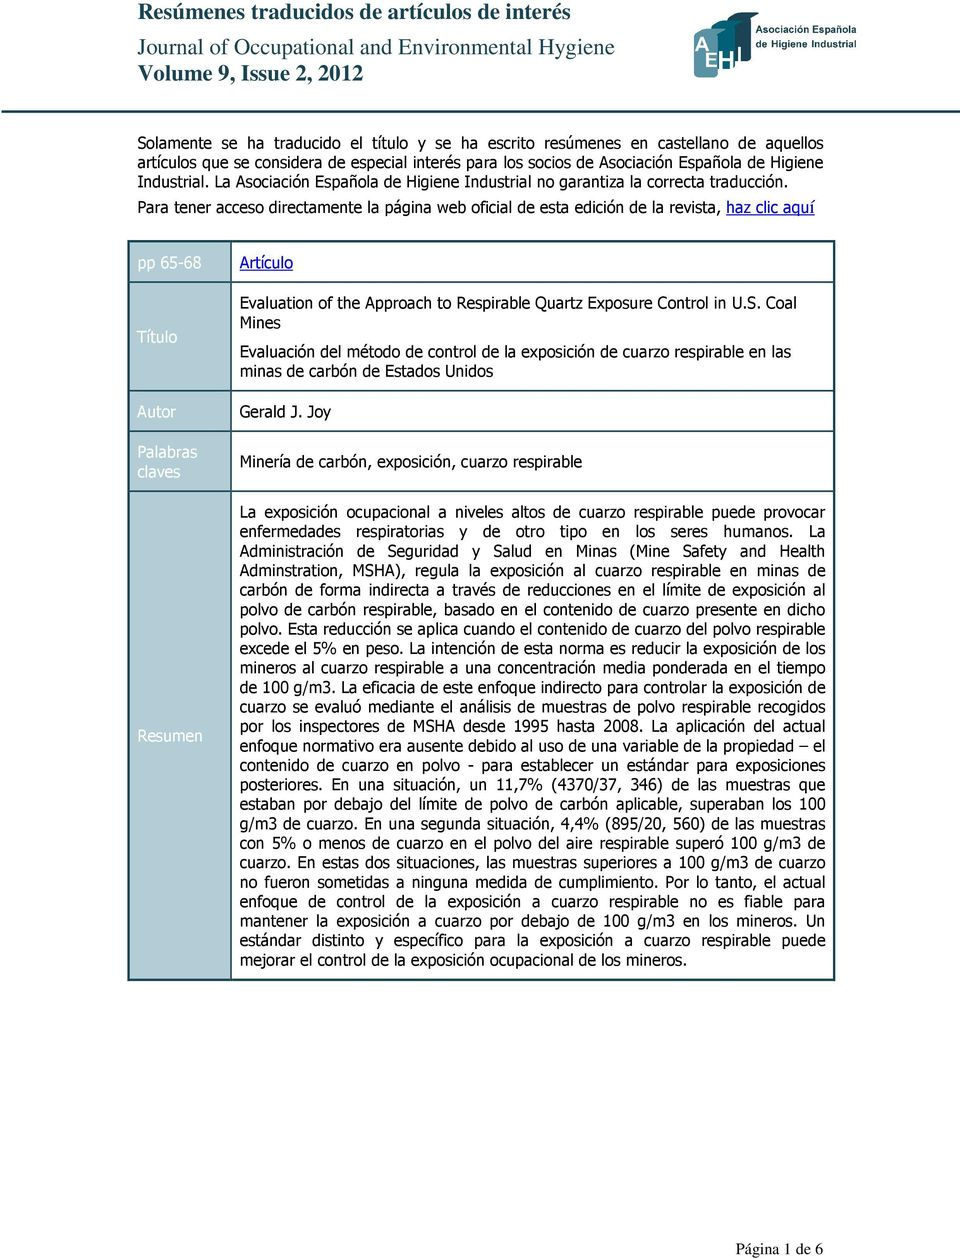 Para tener acceso directamente la página web oficial de esta edición de la revista, haz clic aquí pp 65-68 Evaluation of the Approach to Respirable Quartz Exposure Control in U.S.